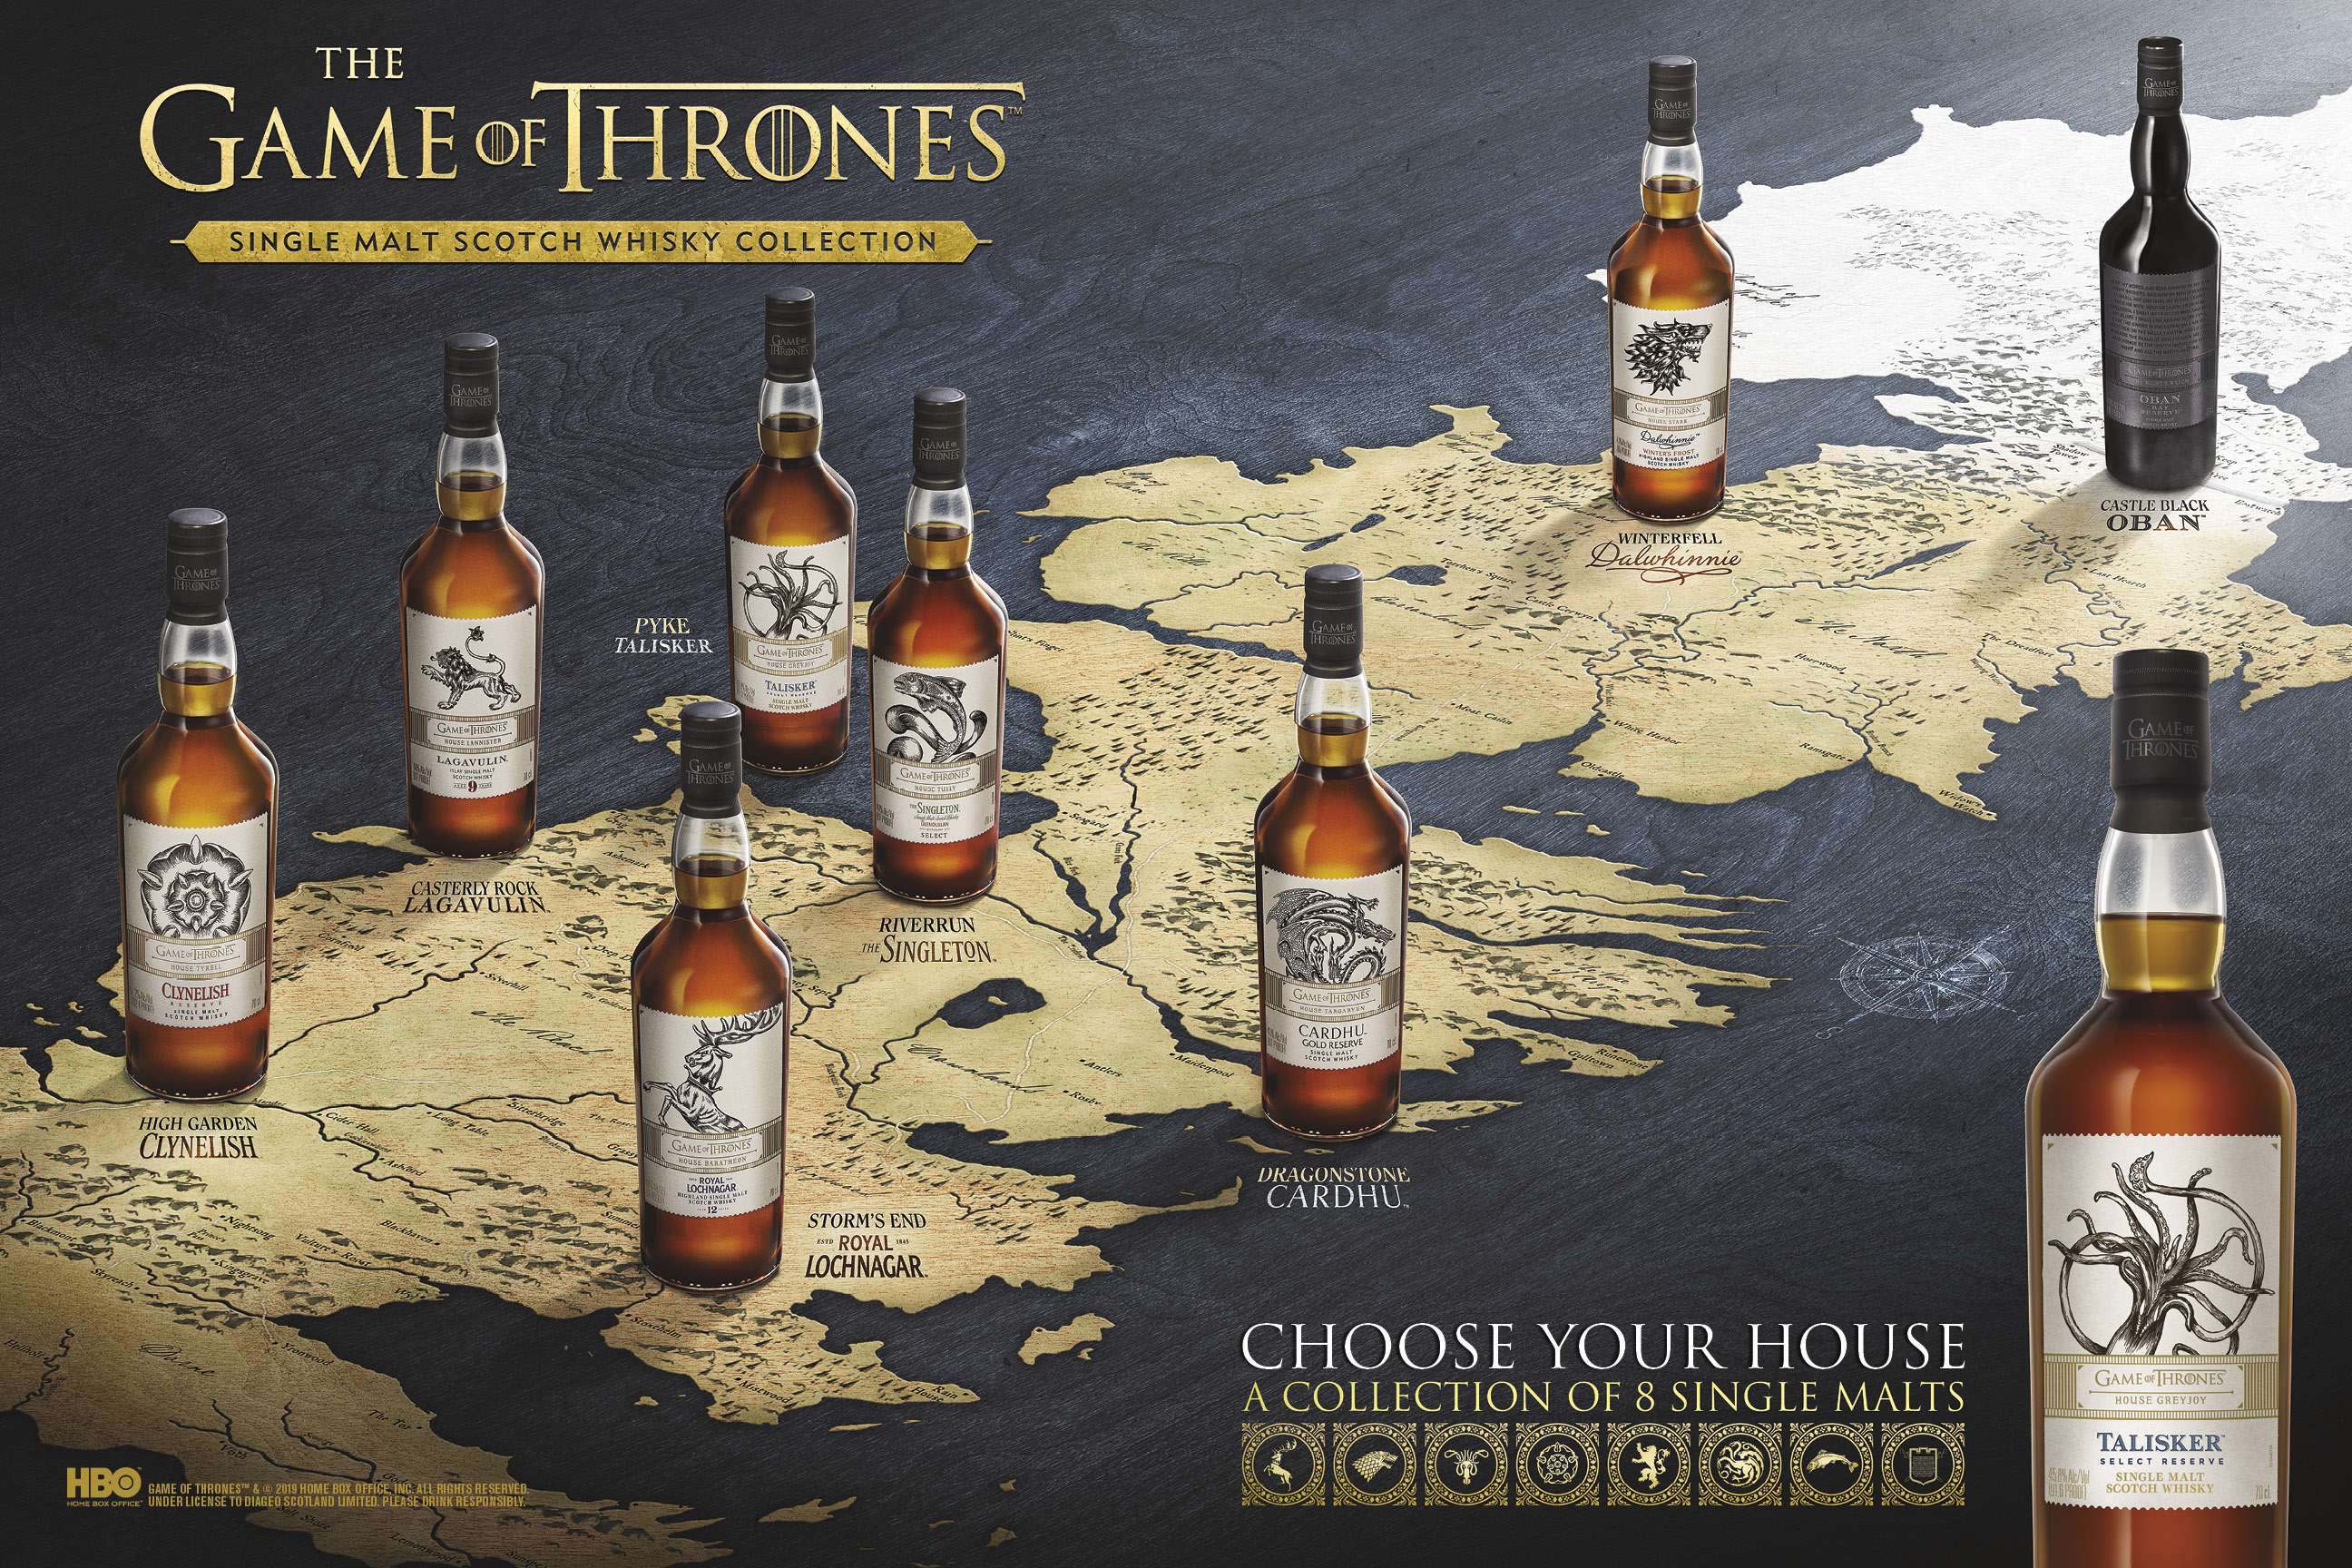 Game of Thrones Whisky on Amazon